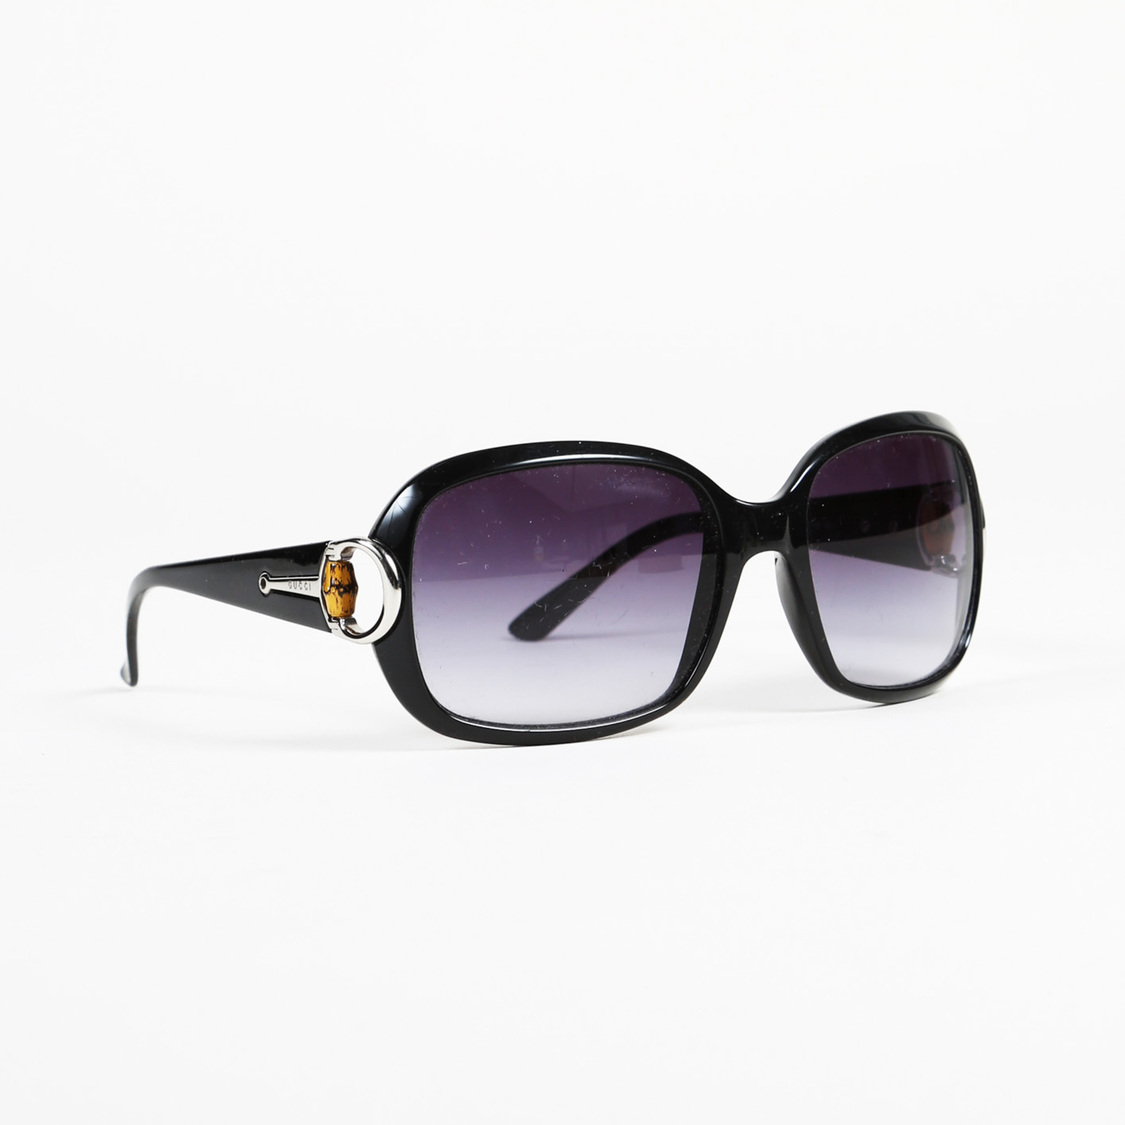 81cfe1ef3e52 Details about Gucci Bamboo Oversized Sunglasses